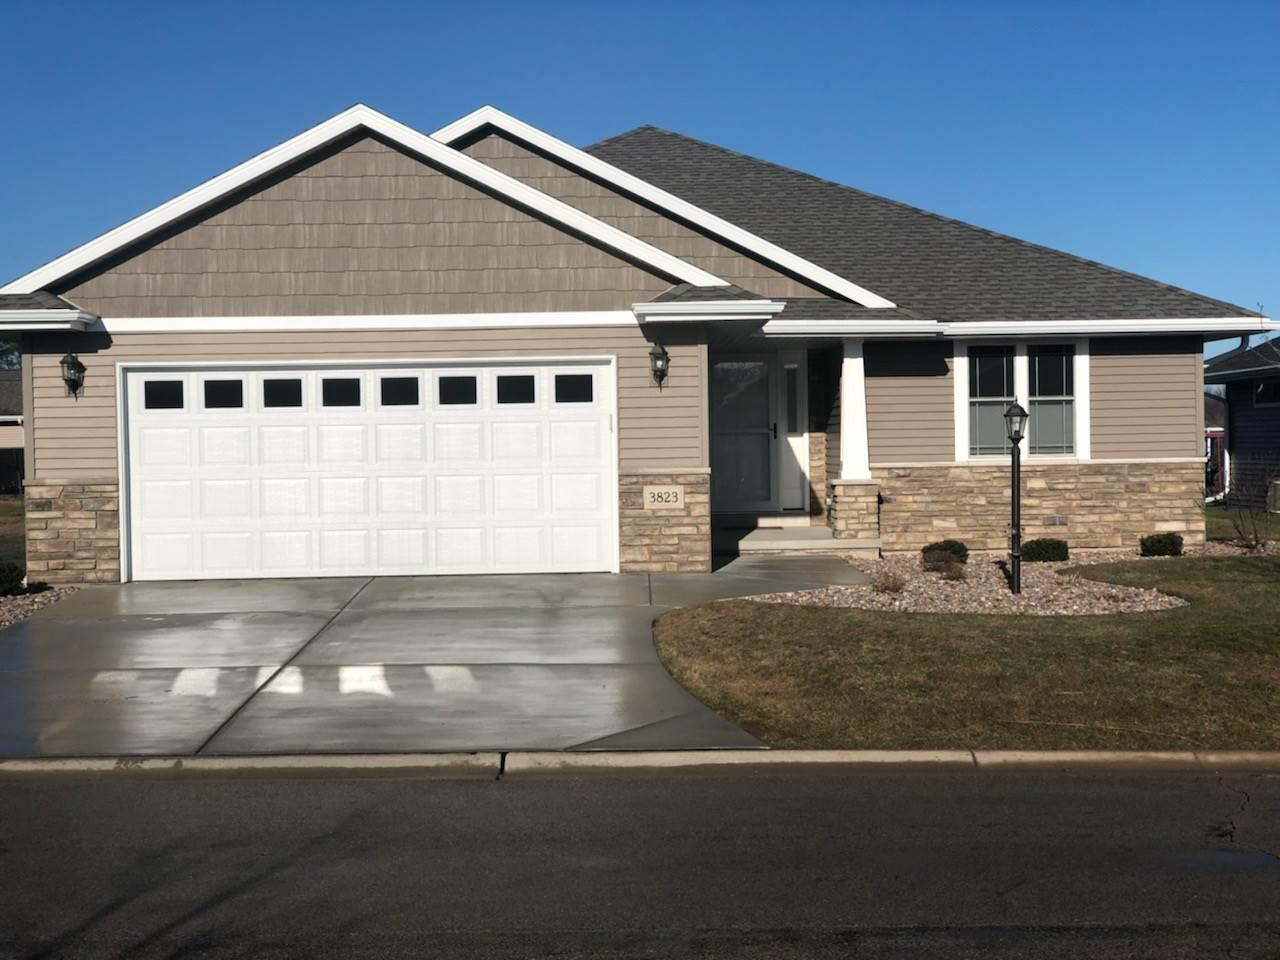 View Condo For Sale at 3823 SHORE CREST LANE, Green Bay, WI